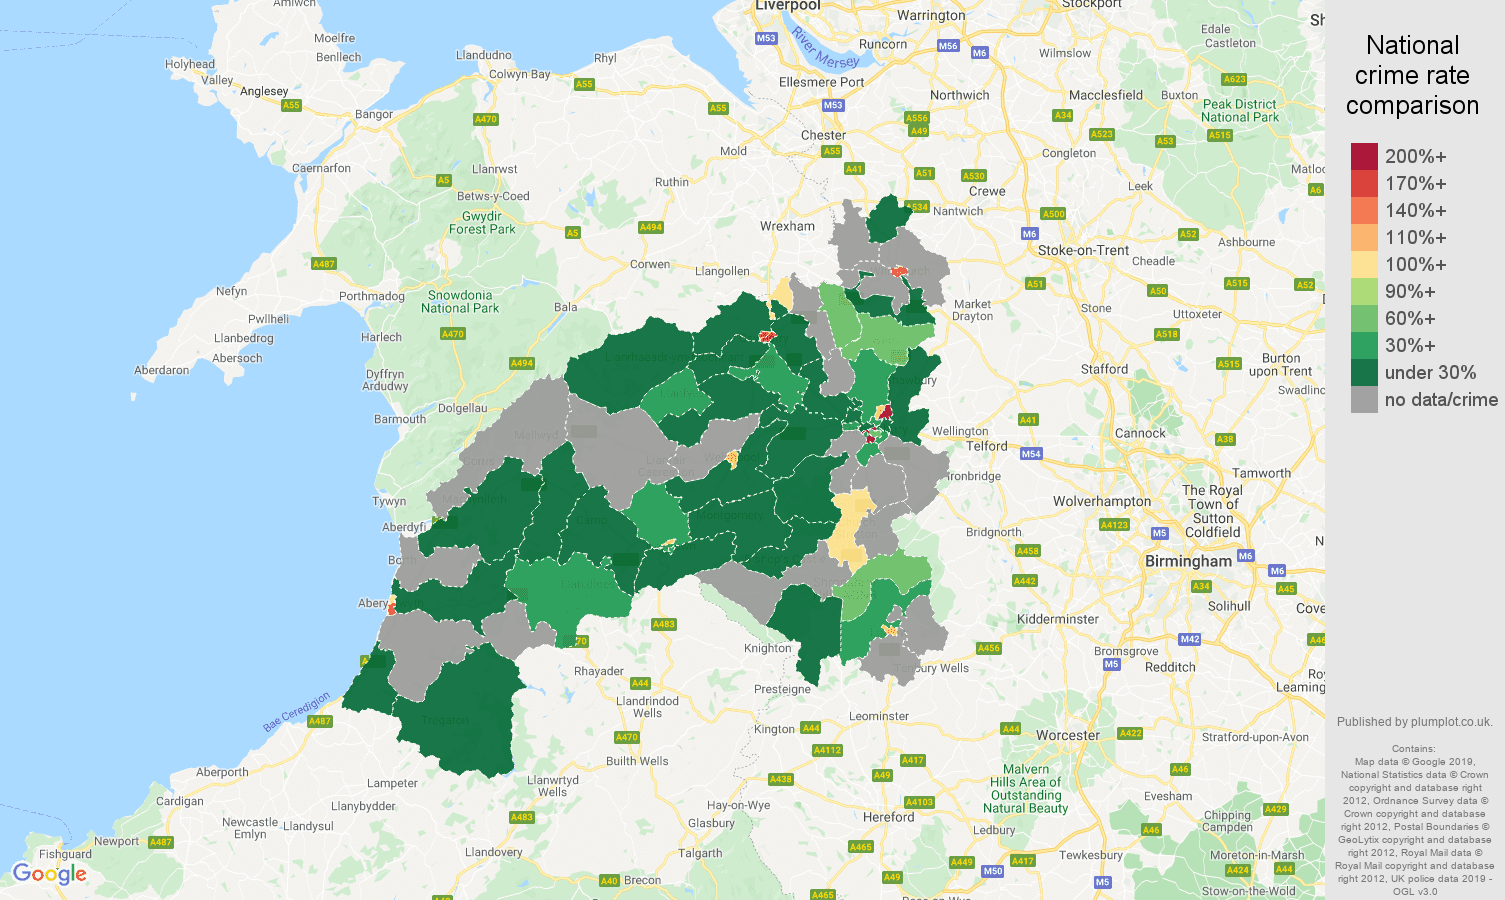 Shrewsbury shoplifting crime rate comparison map